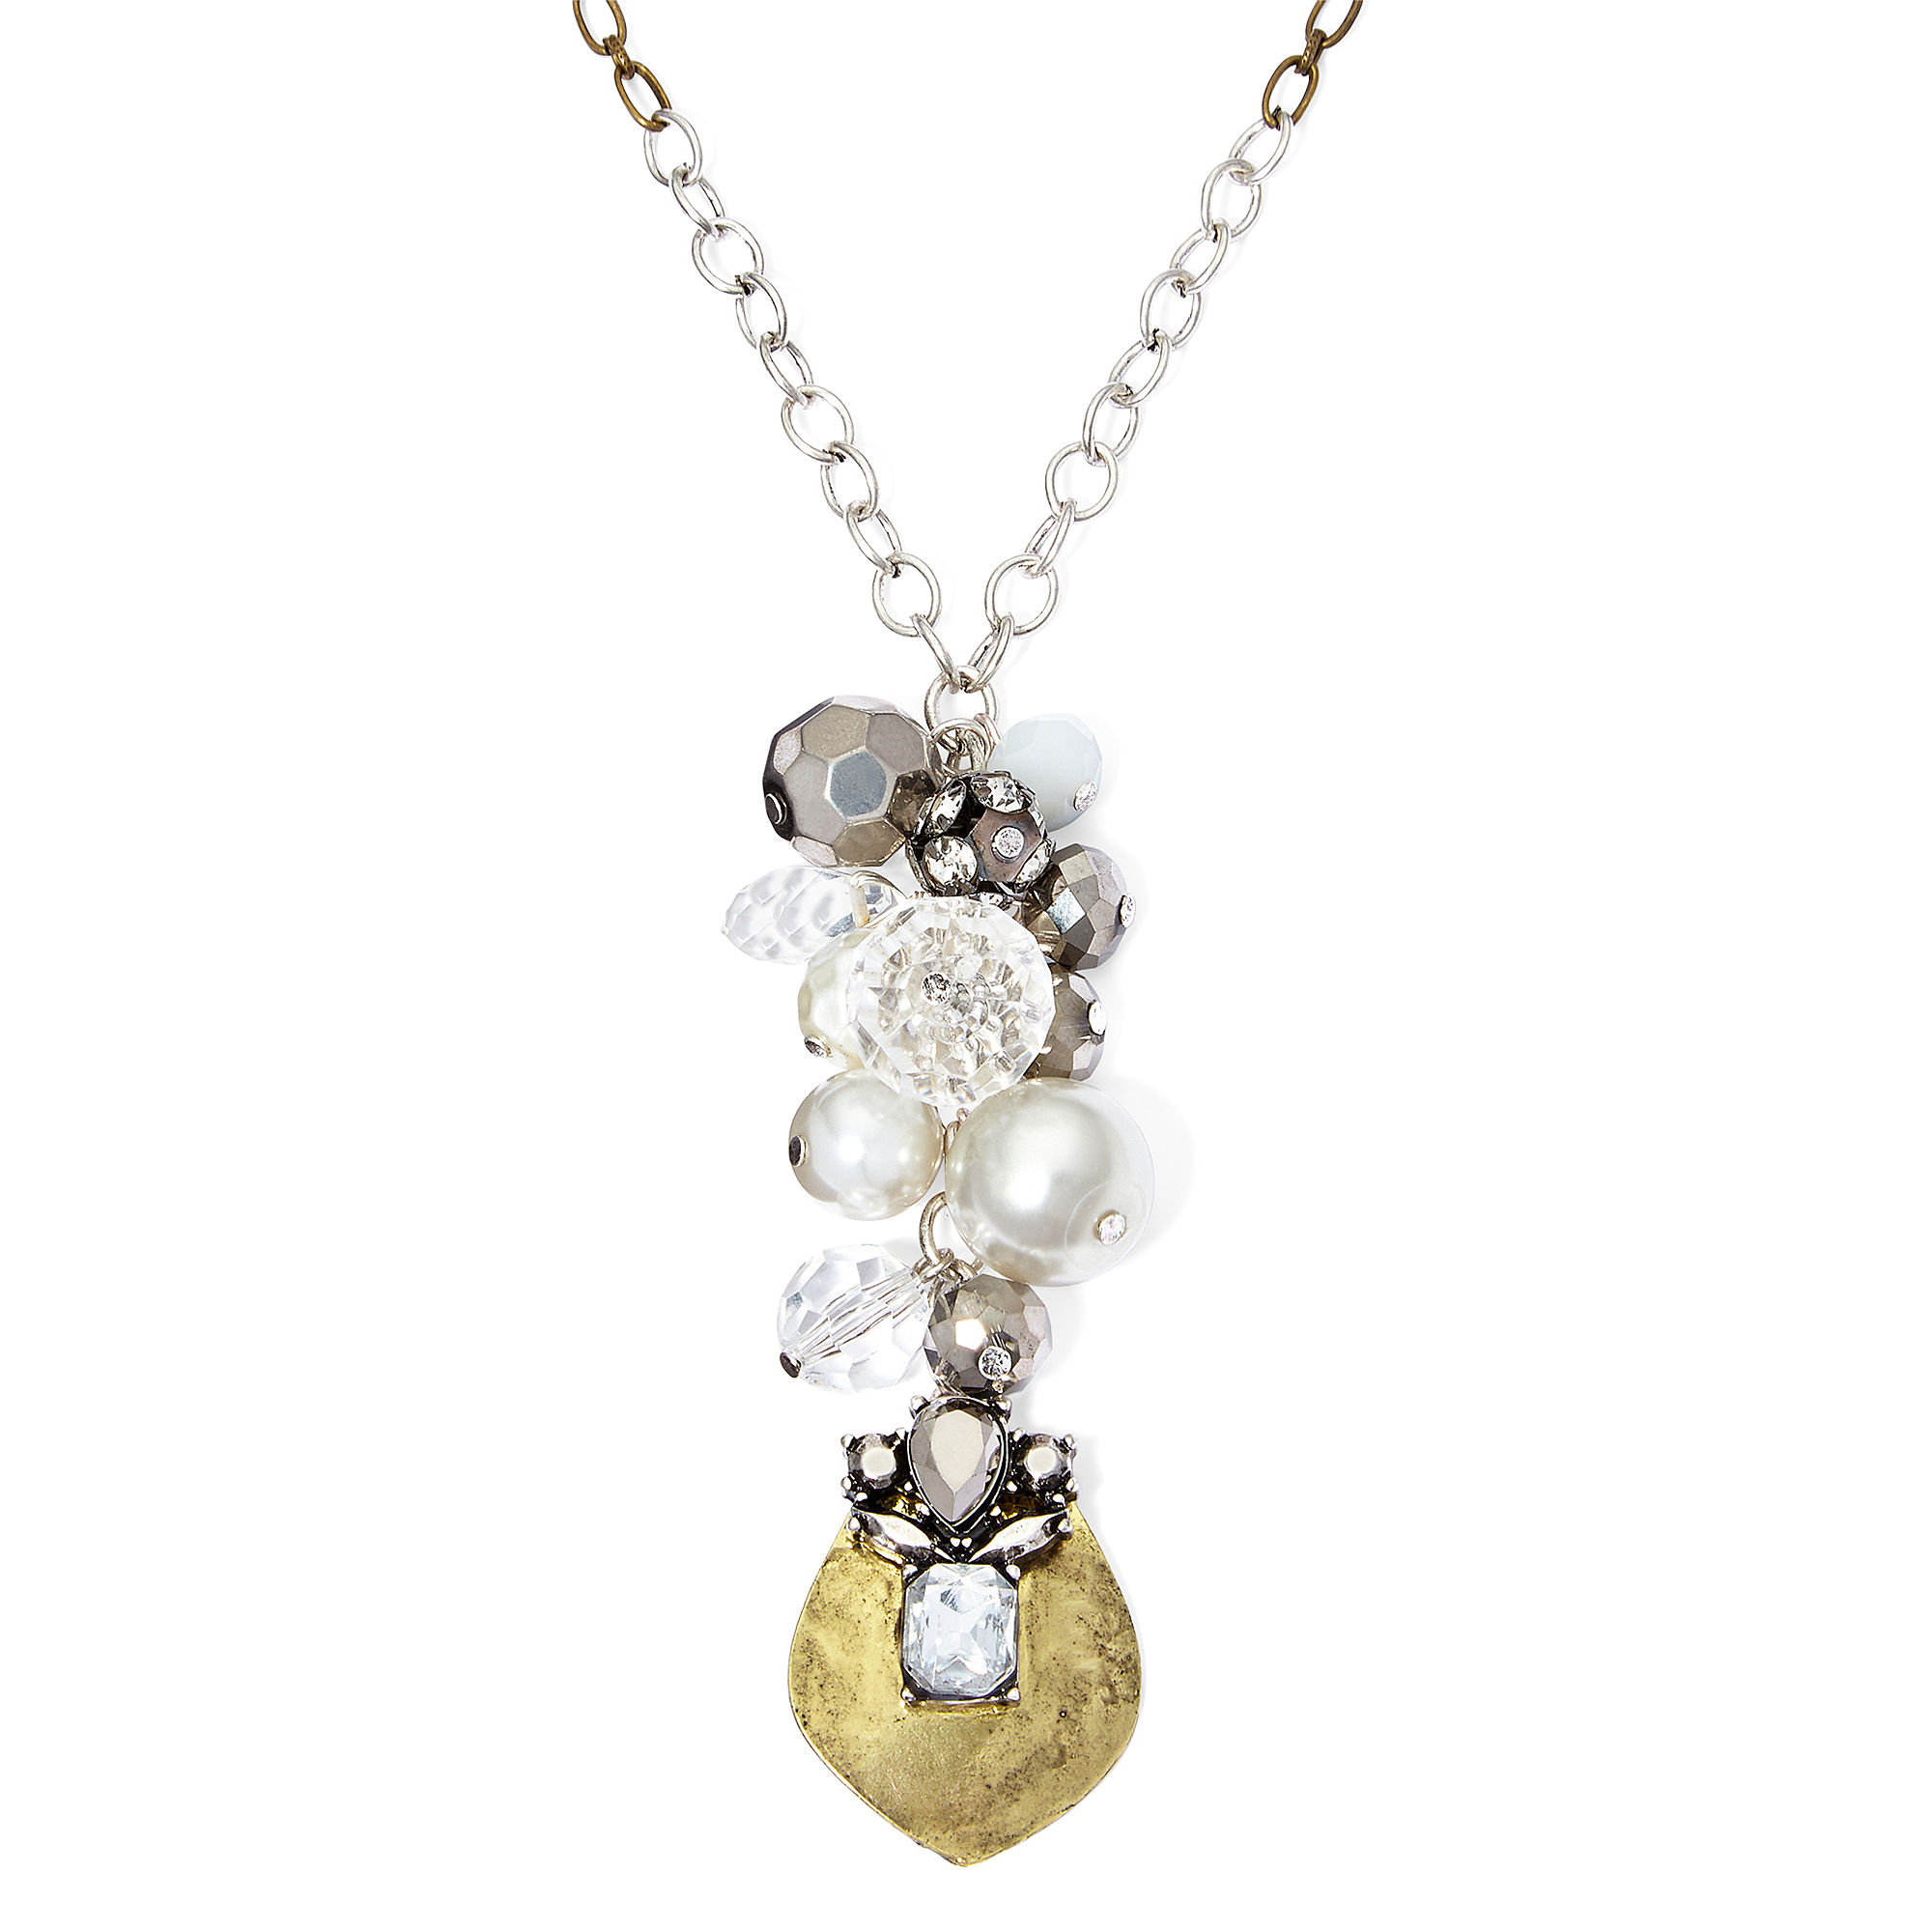 Messages from the Heart by Sandra Magsamen Two-Tone Charm Necklace